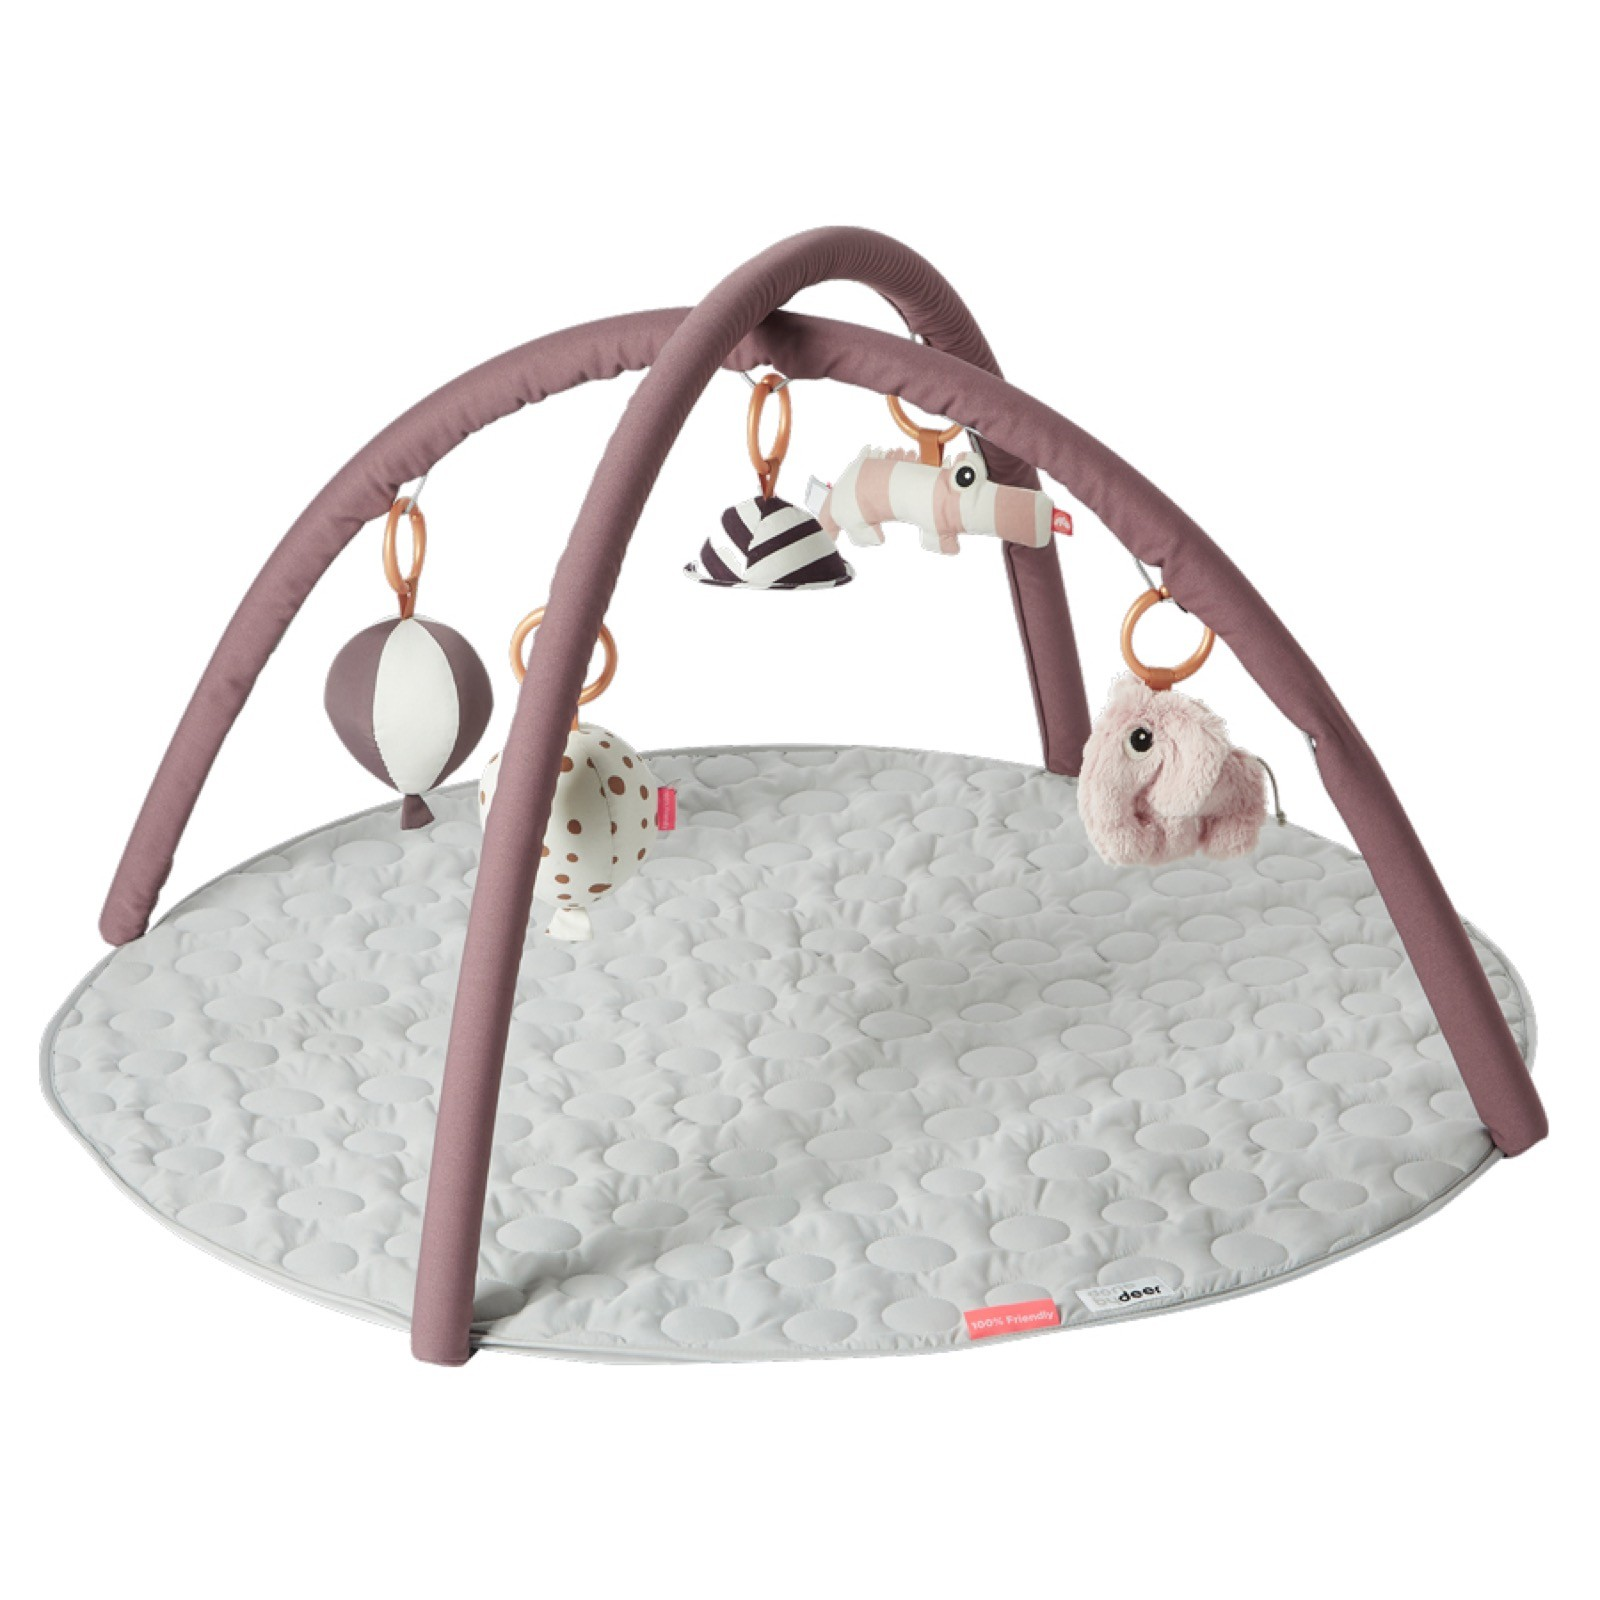 Spielbogen Baby Done By Deer Activity Spielbogen Matte Rosa